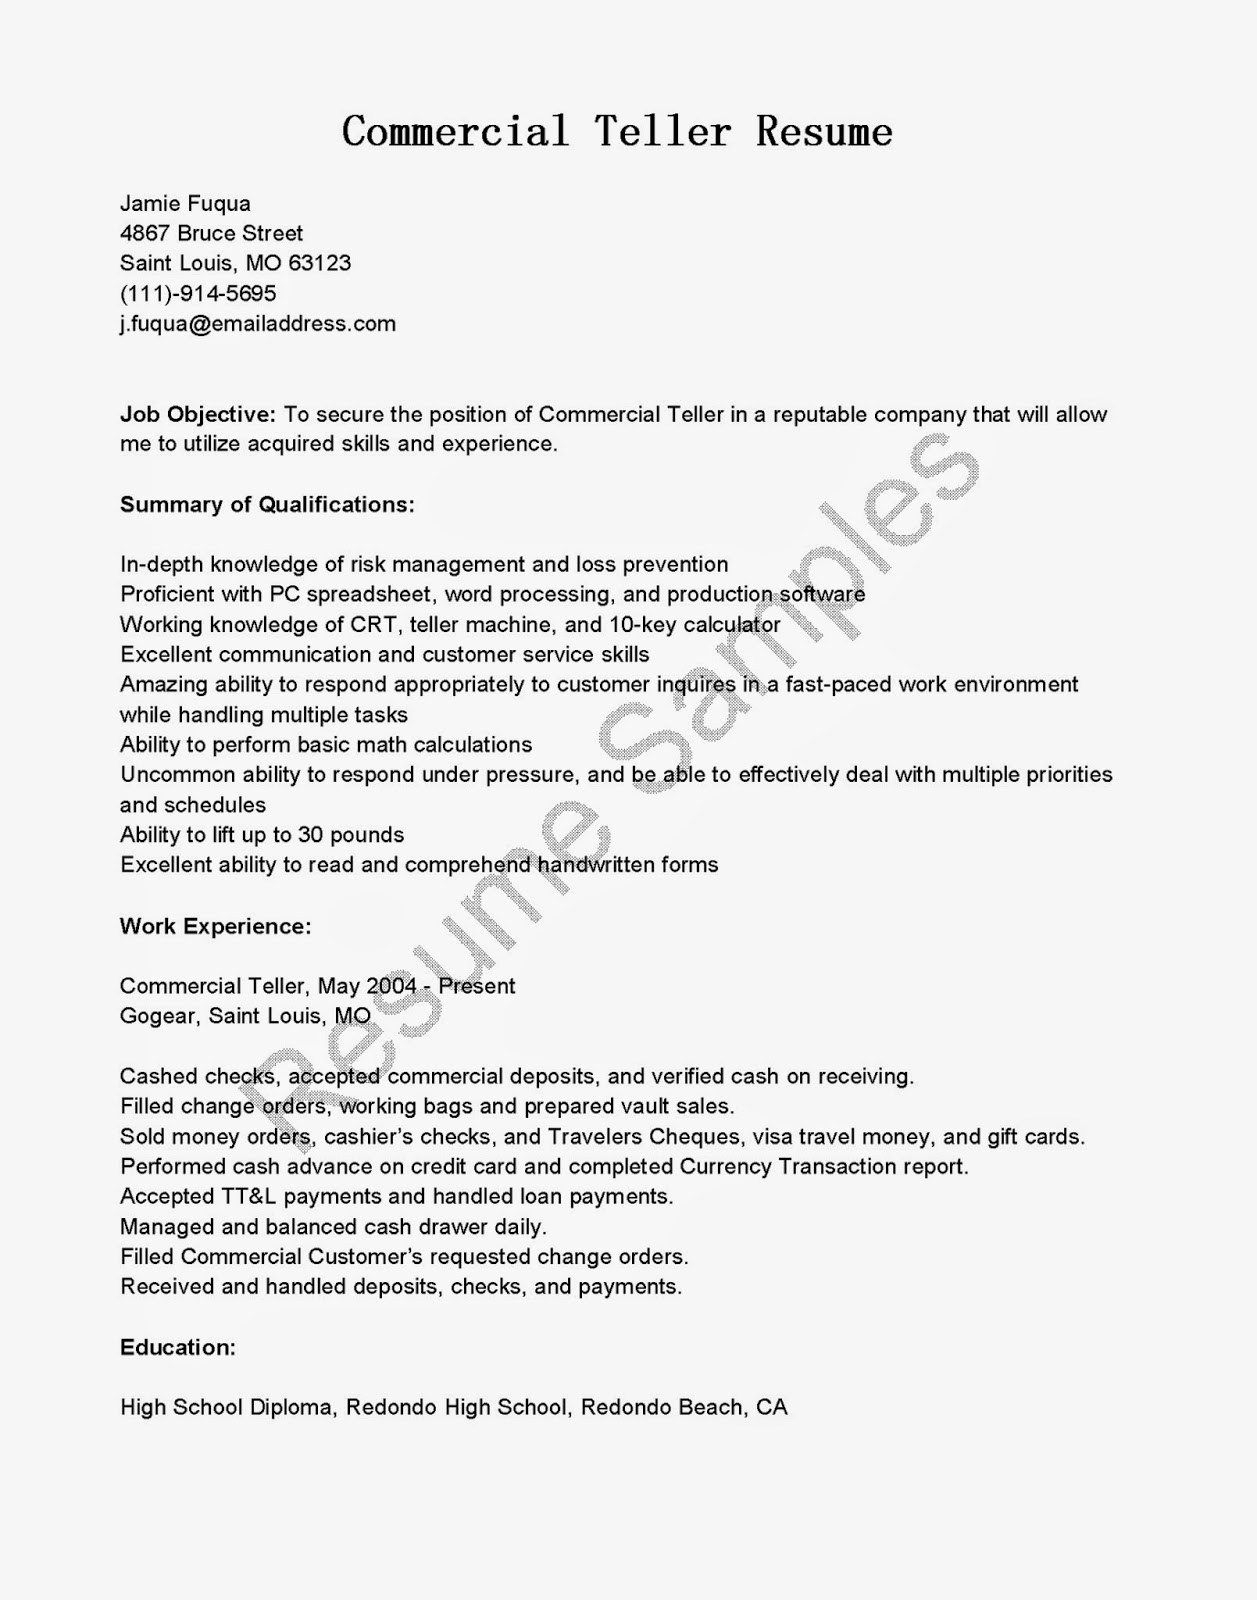 Bank Teller Responsibilities for Resume - Bank Teller Resume Example Cover Letter for Officer Responsibilities